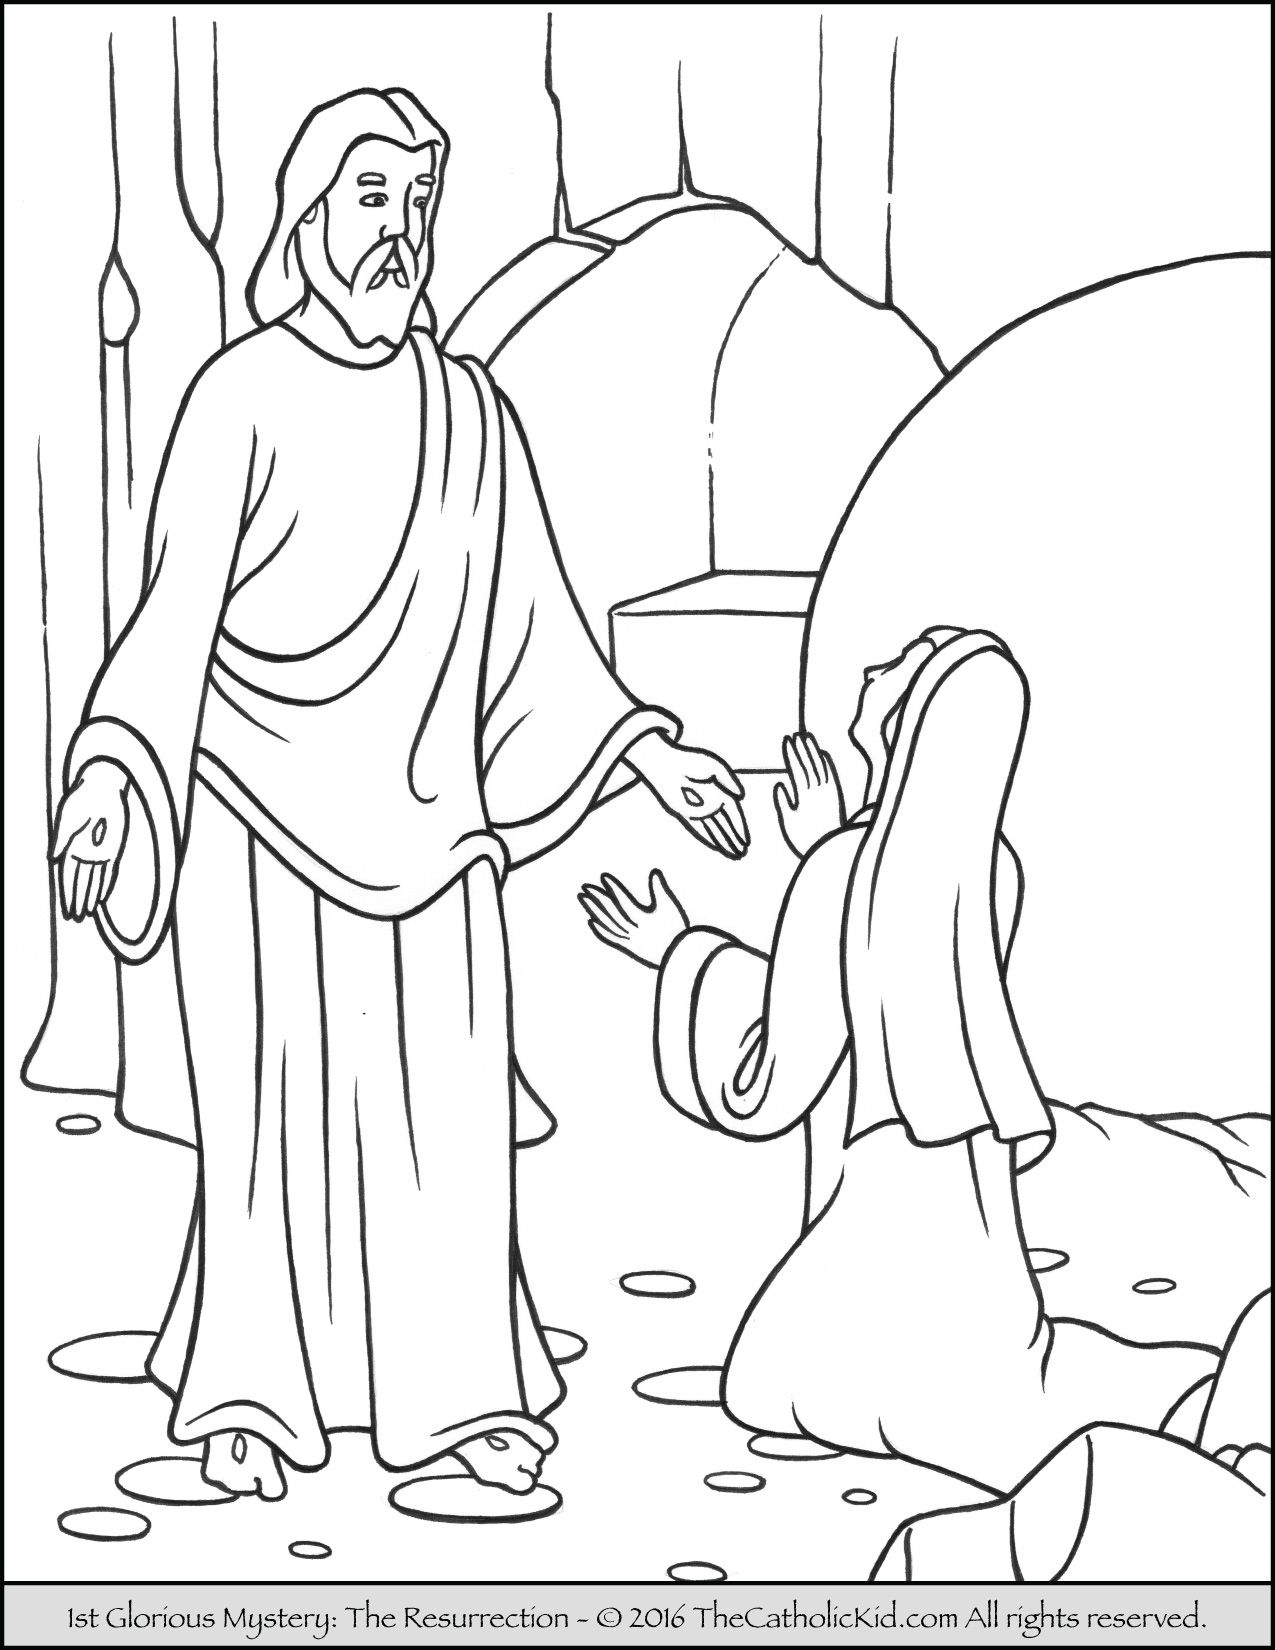 The 1st Glorious Mystery Coloring Page Resurrection Jesus Rises From Dead On